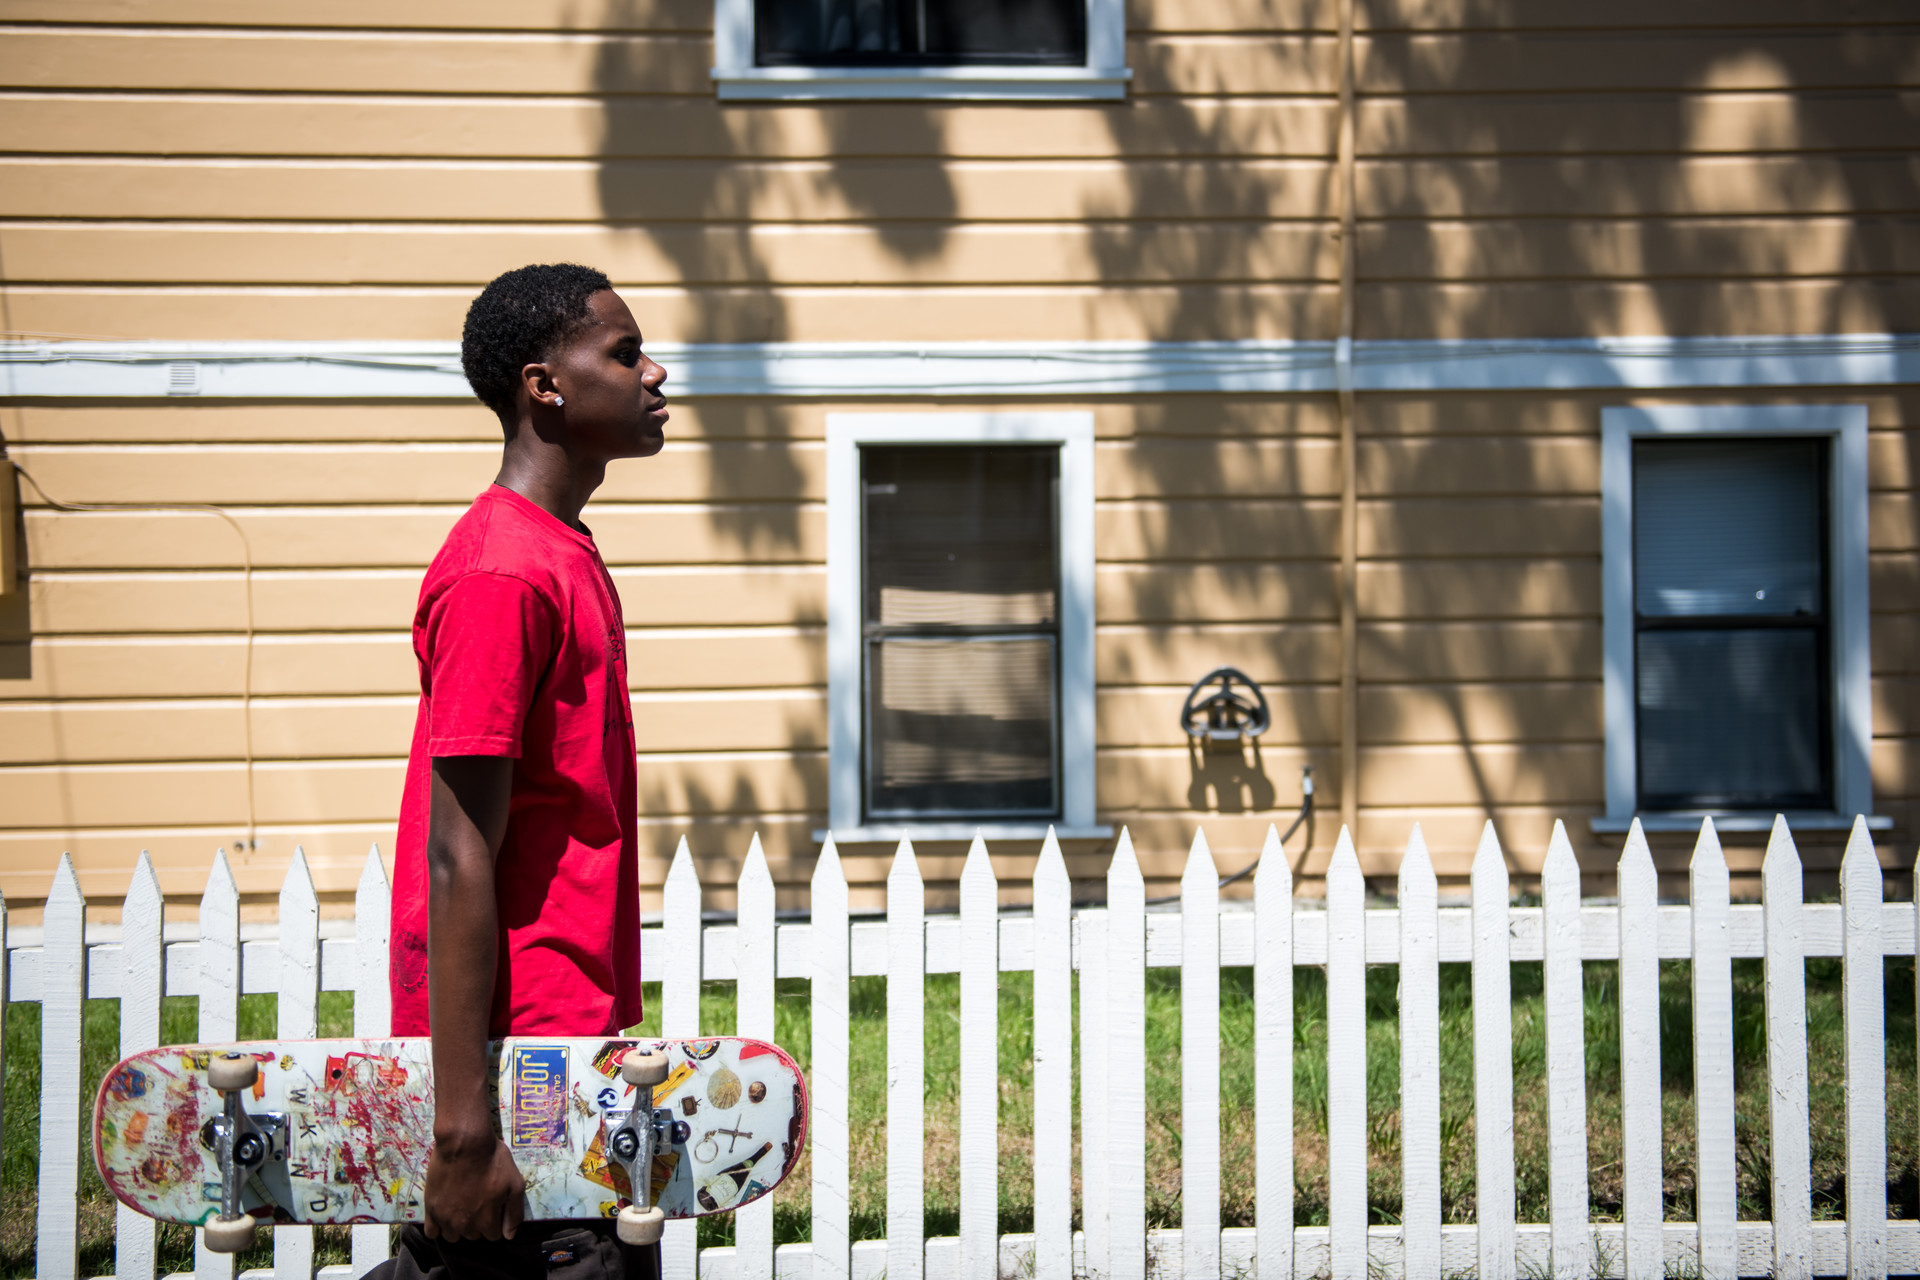 Qadir Scott, a senior at Oakland Tech, in Alameda on April 6, 2020.